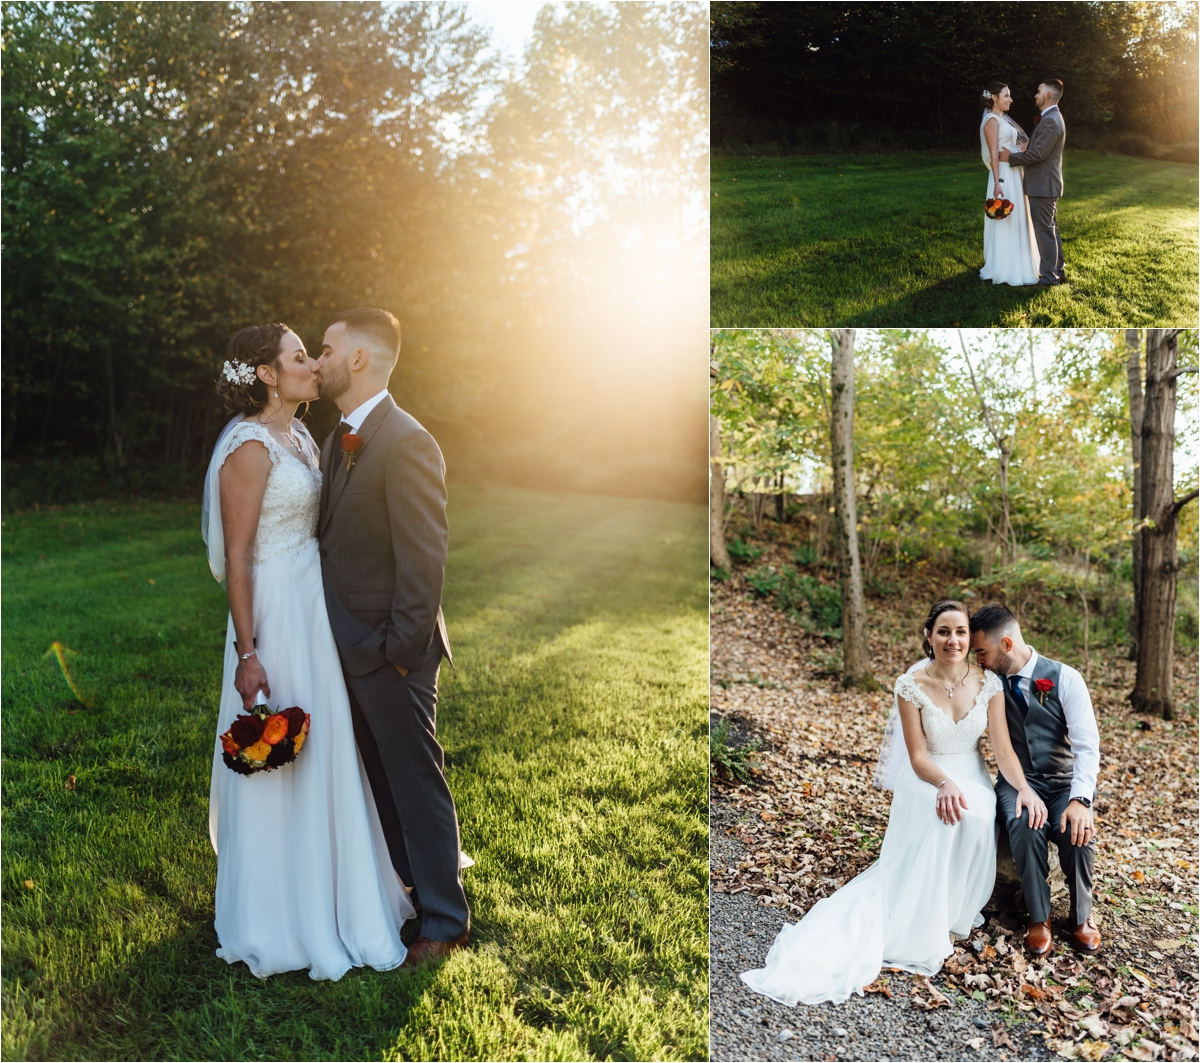 Sarah_&_Doug_Stroudsberg_Wedding_the_photo_farm_0061.jpg